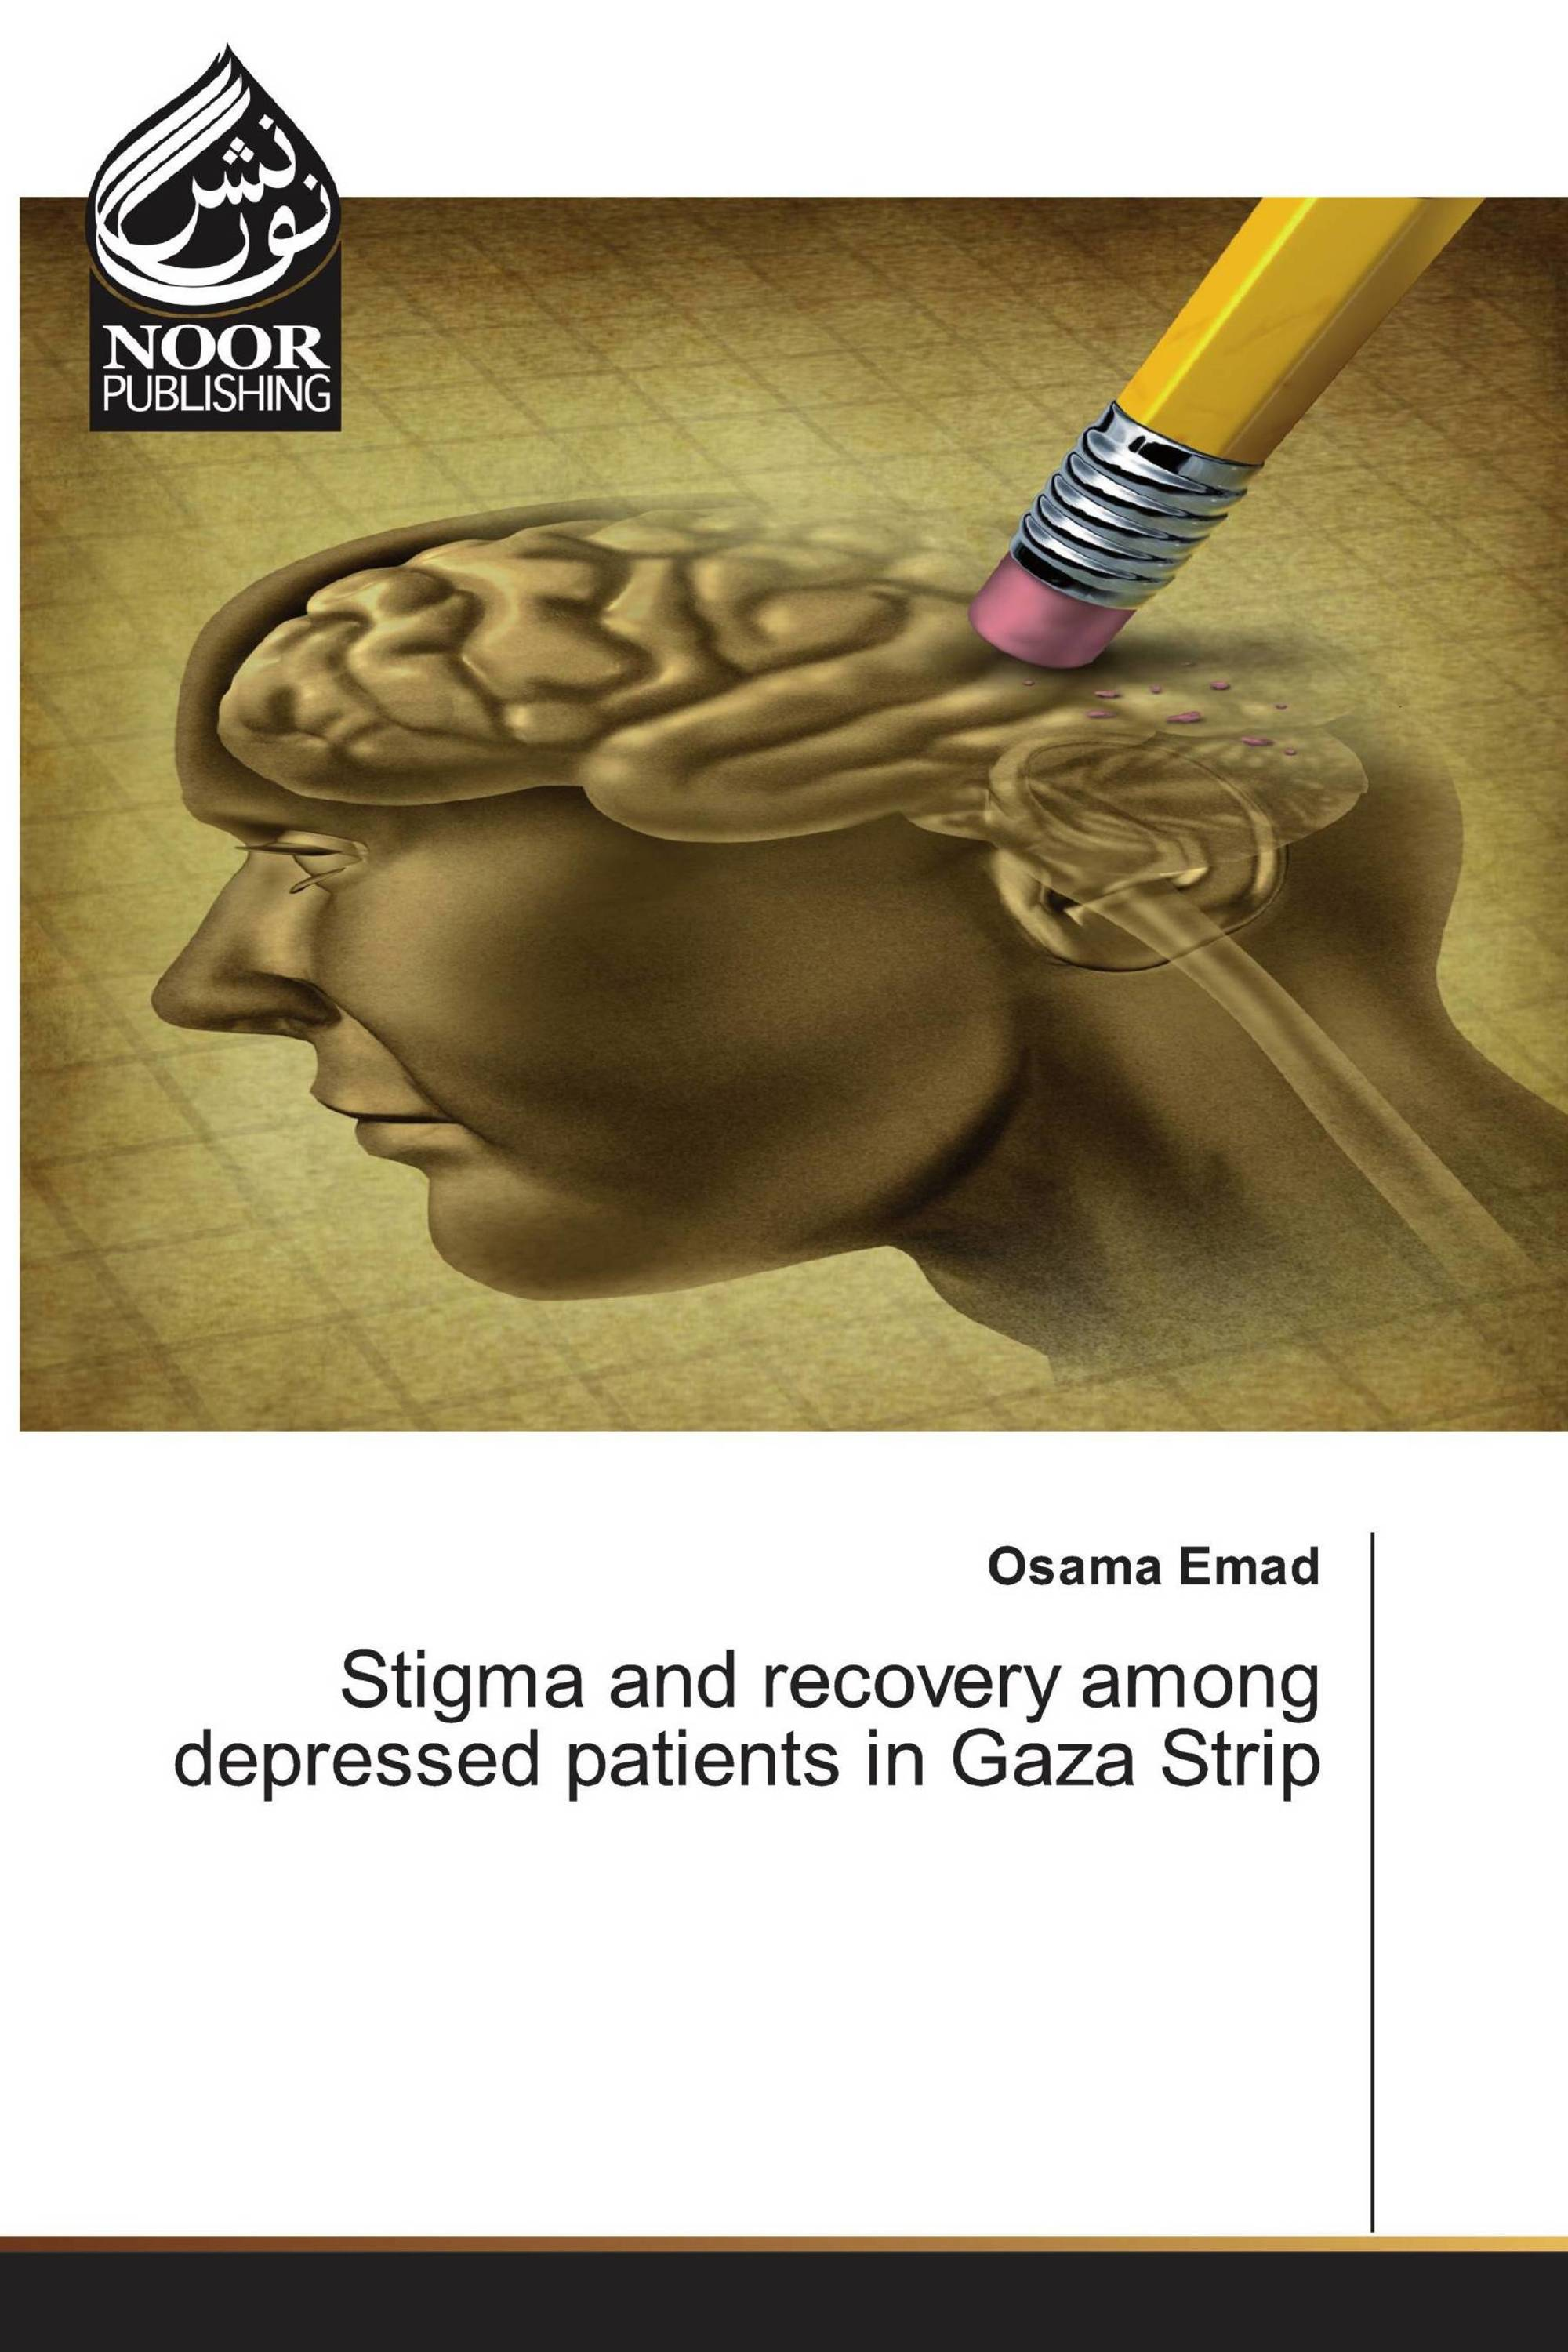 Stigma and recovery among depressed patients in Gaza Strip